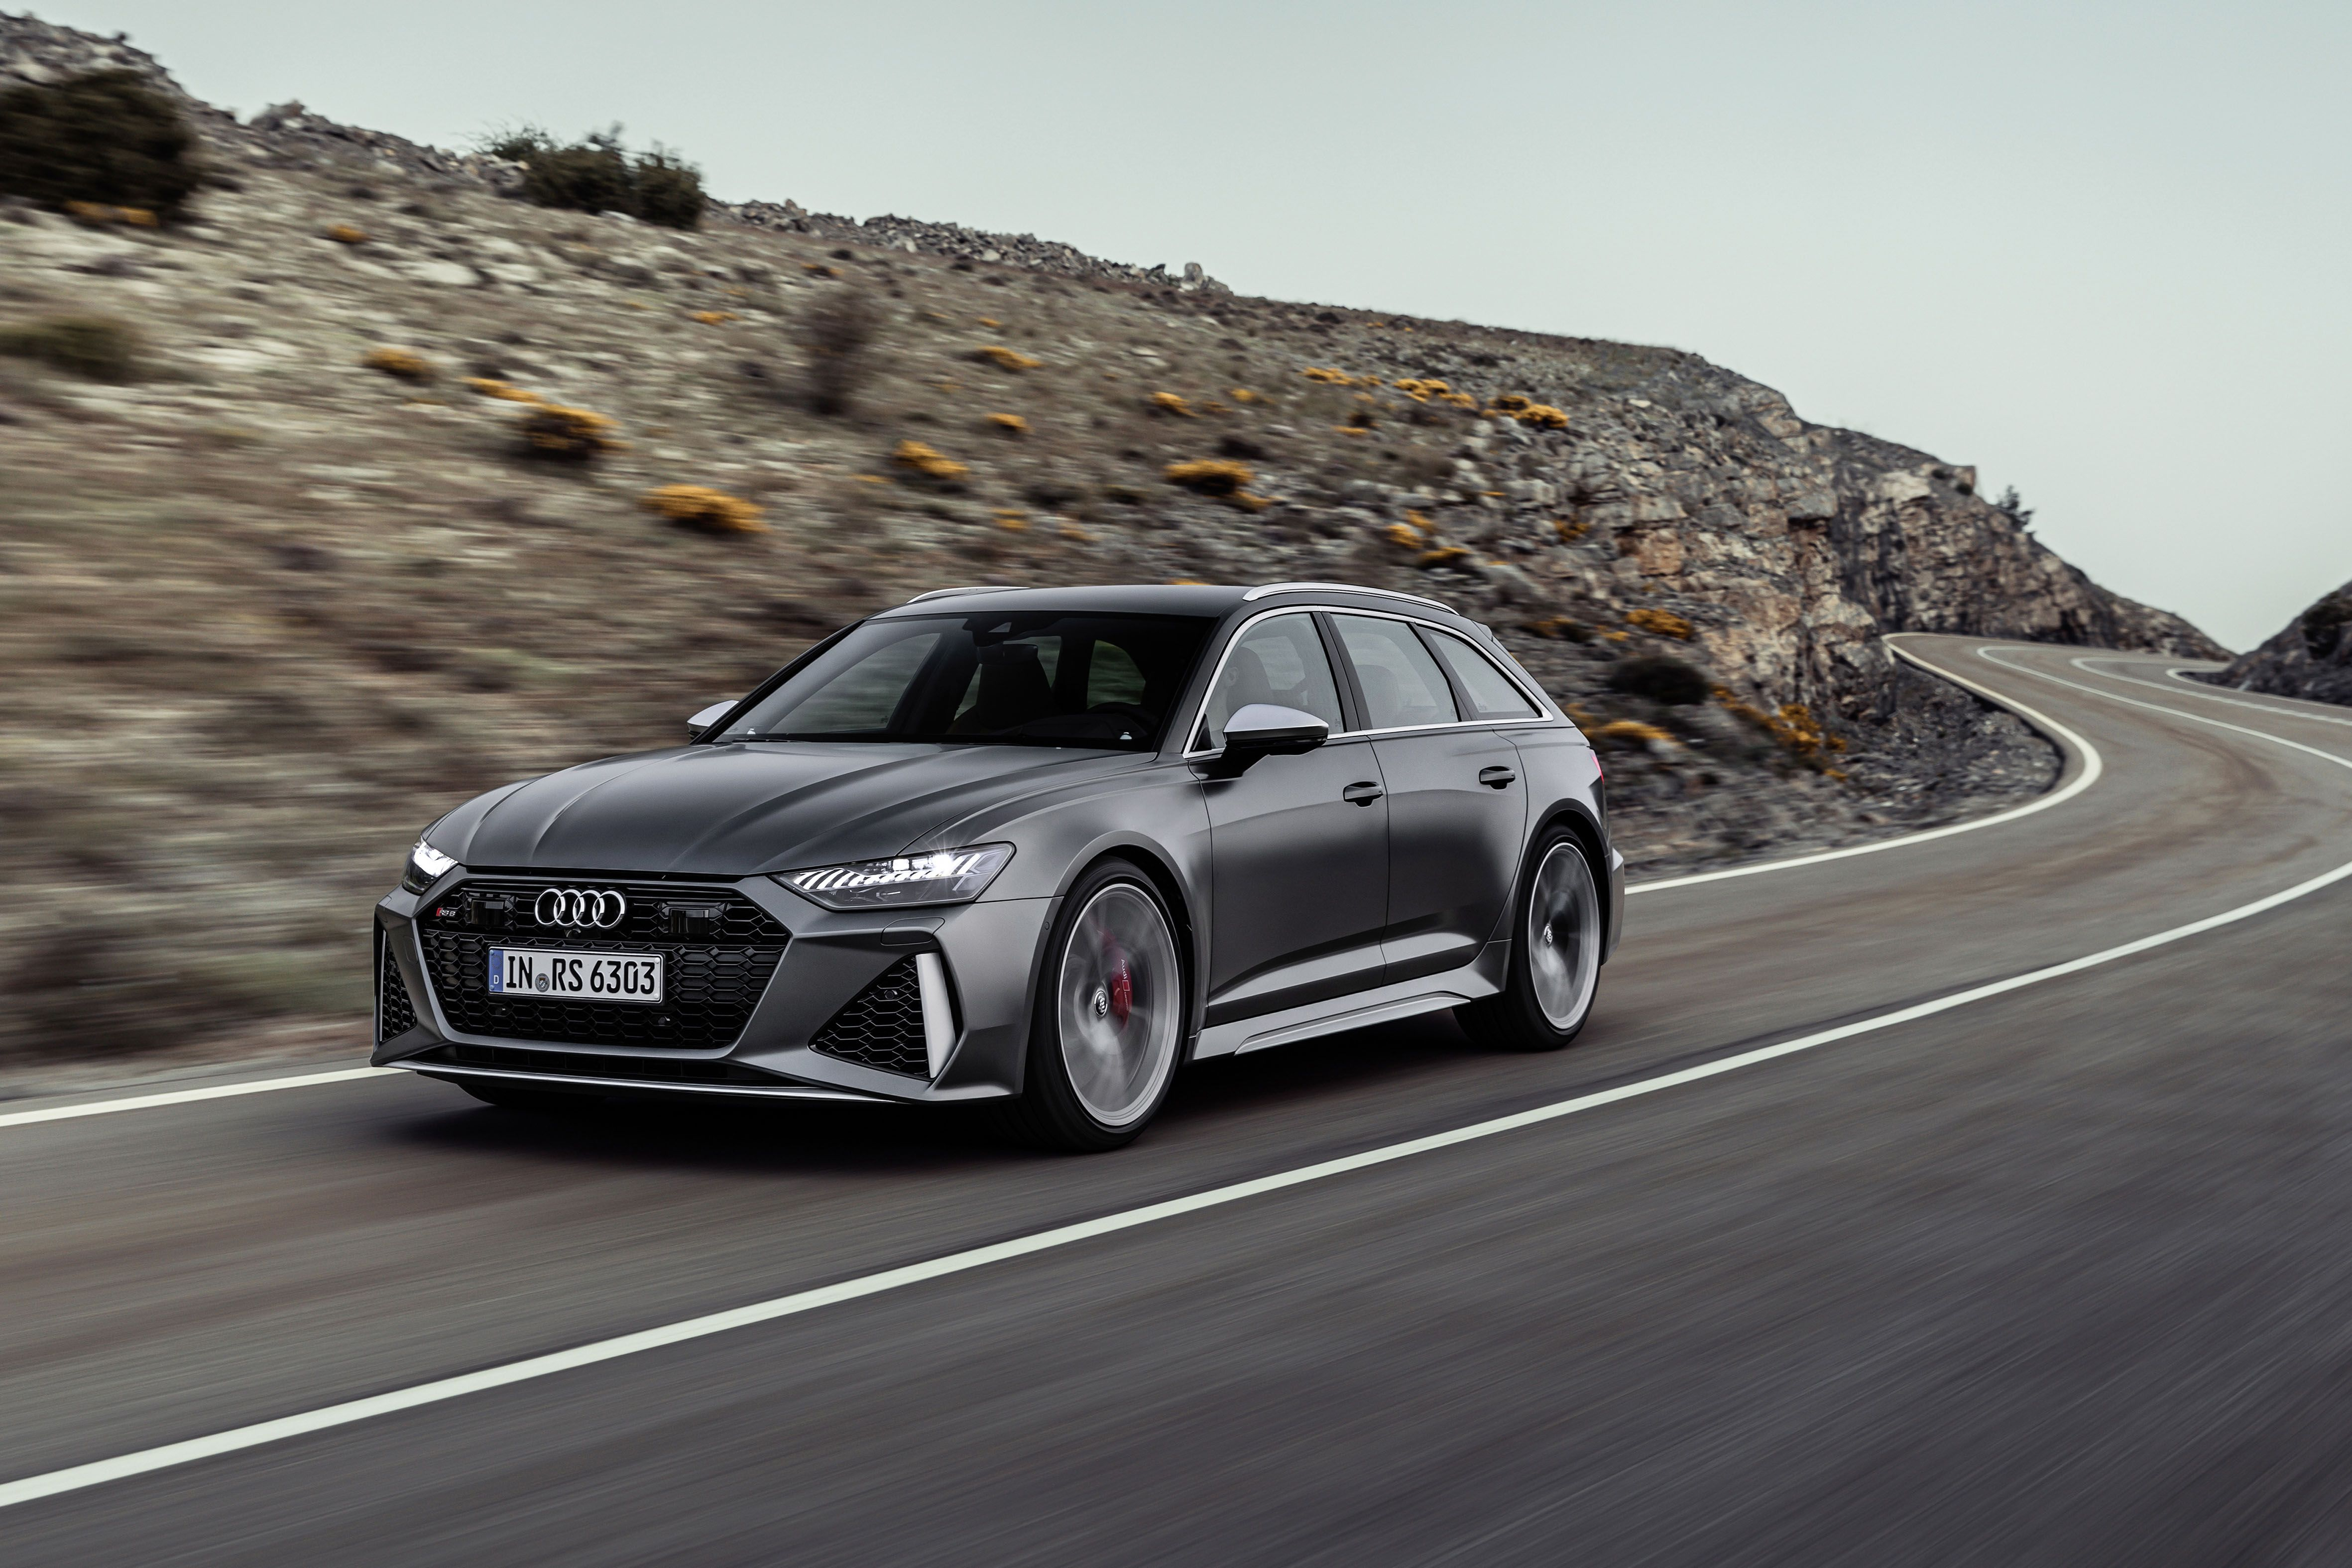 The 2020 Audi Rs6 Avant Is One Of The Hottest Wagons Ever And Finally Coming To The U S Droomauto S Bmw M5 Audi